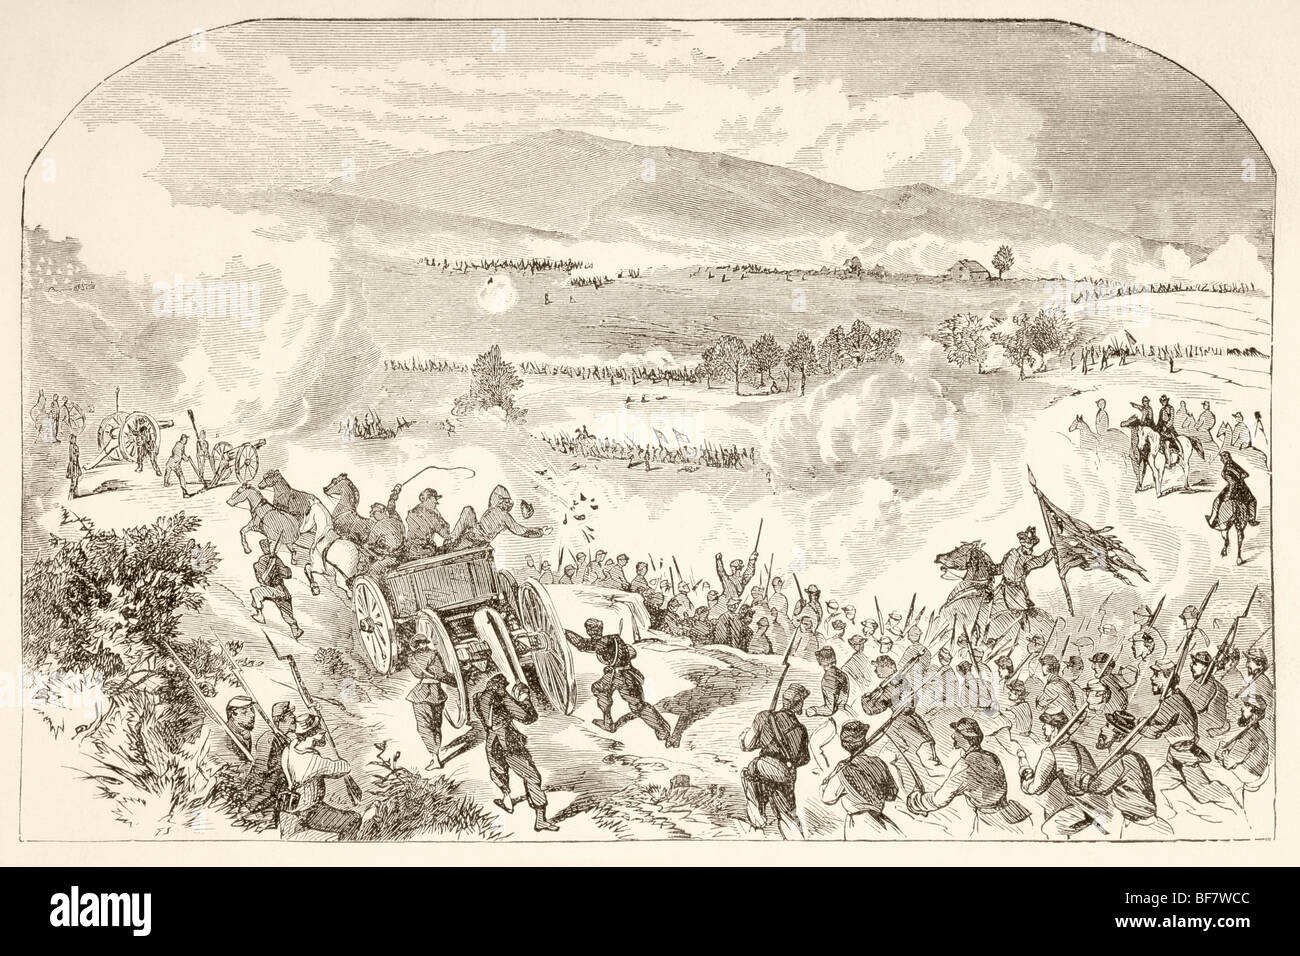 The Battle of Malvern Hill, also known as the Battle of Poindexter's Farm during the American Civil War. - Stock Image